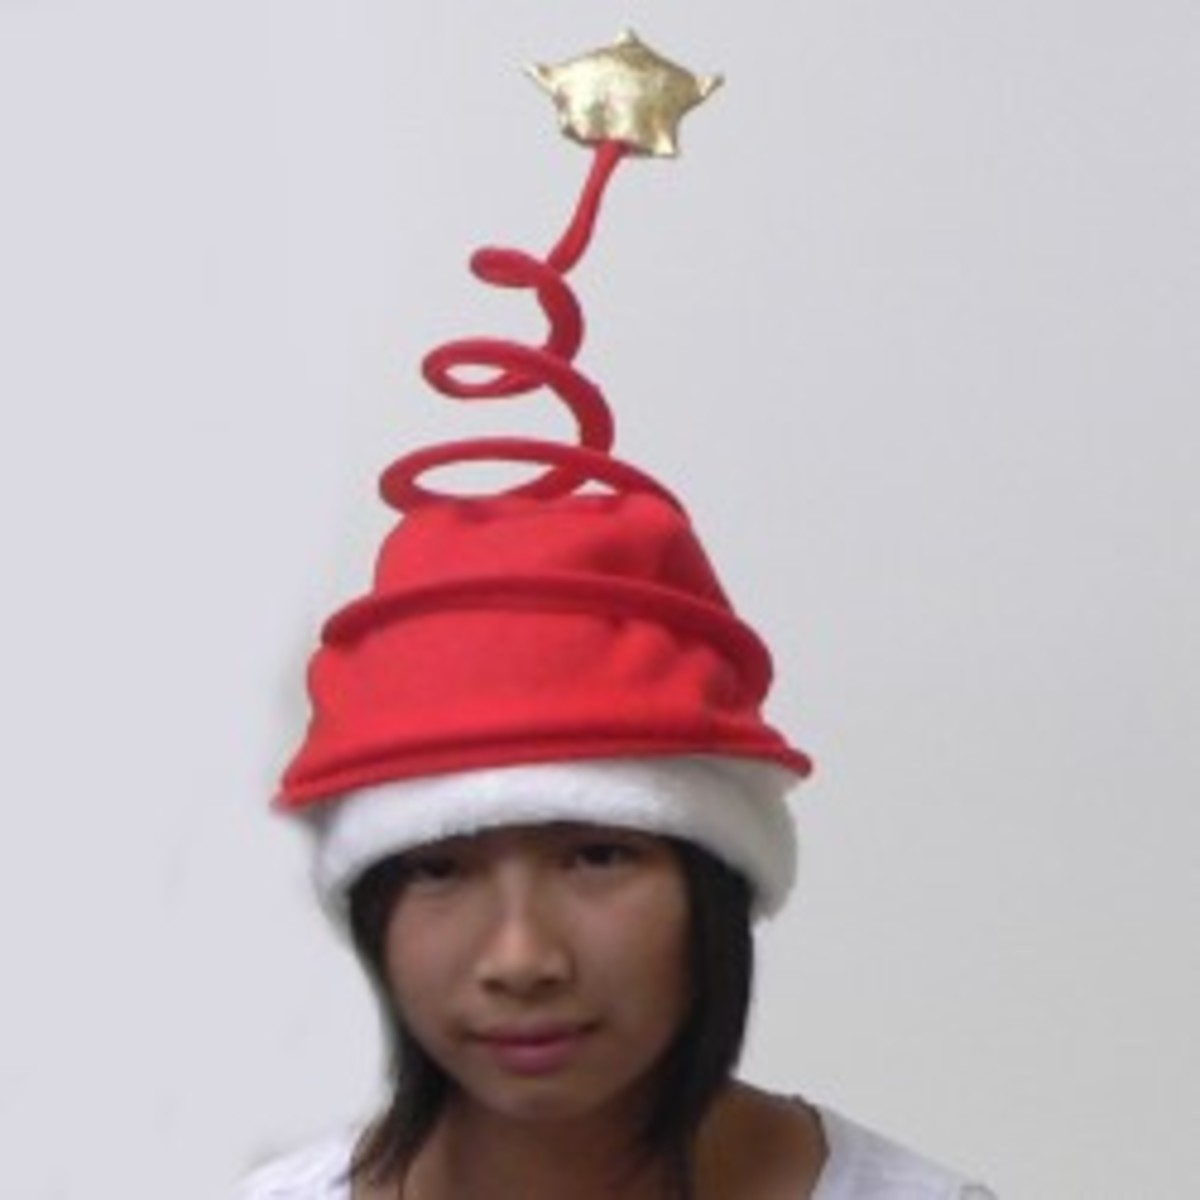 Christmas Novelty Hats: Trees, Reindeer, Turkeys, Elves, and Other Assorted Fun Head Wear